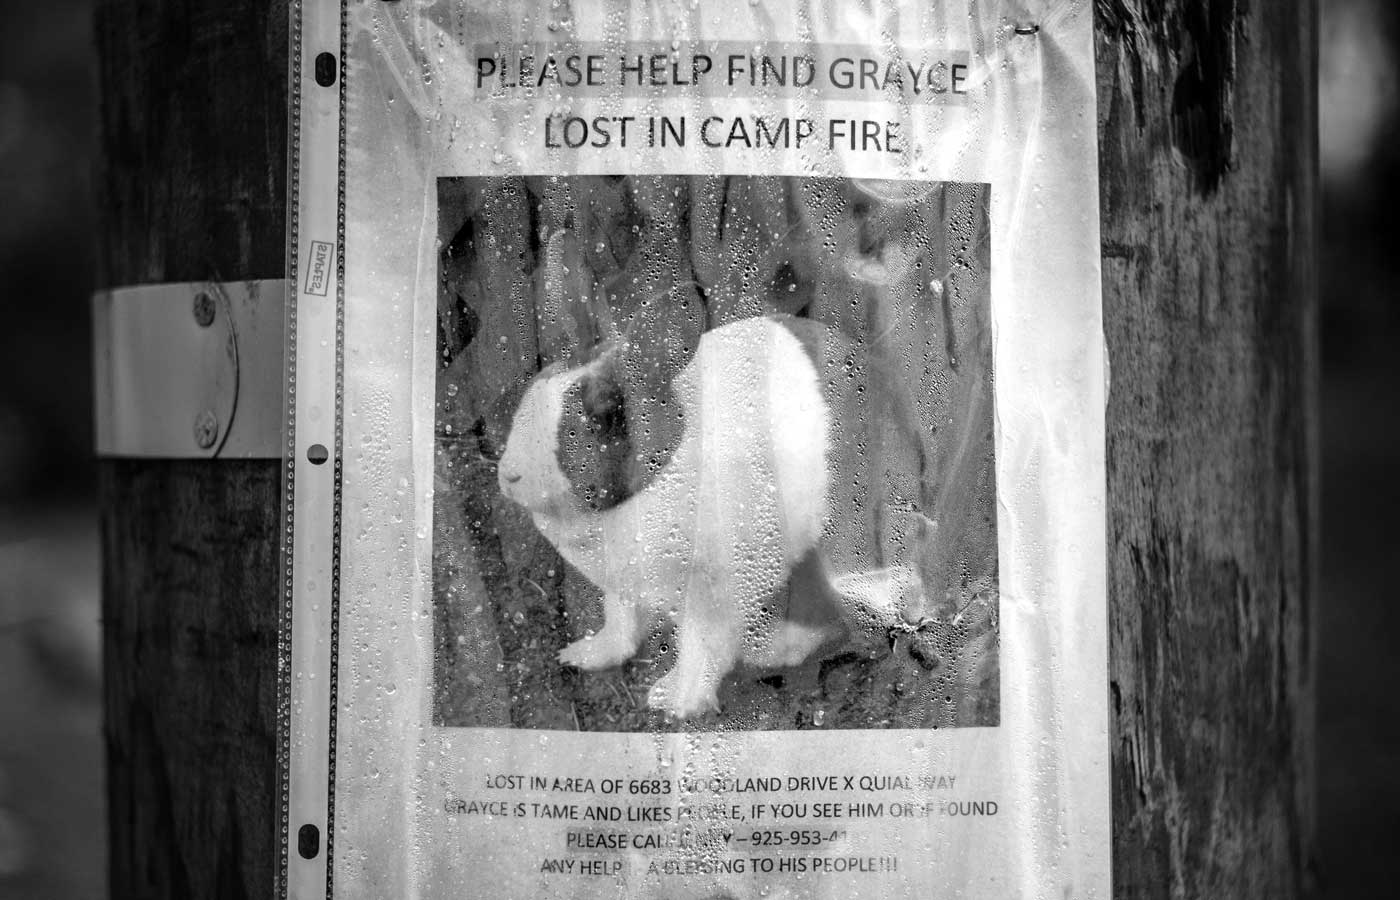 Bunny Lost in Camp Fire